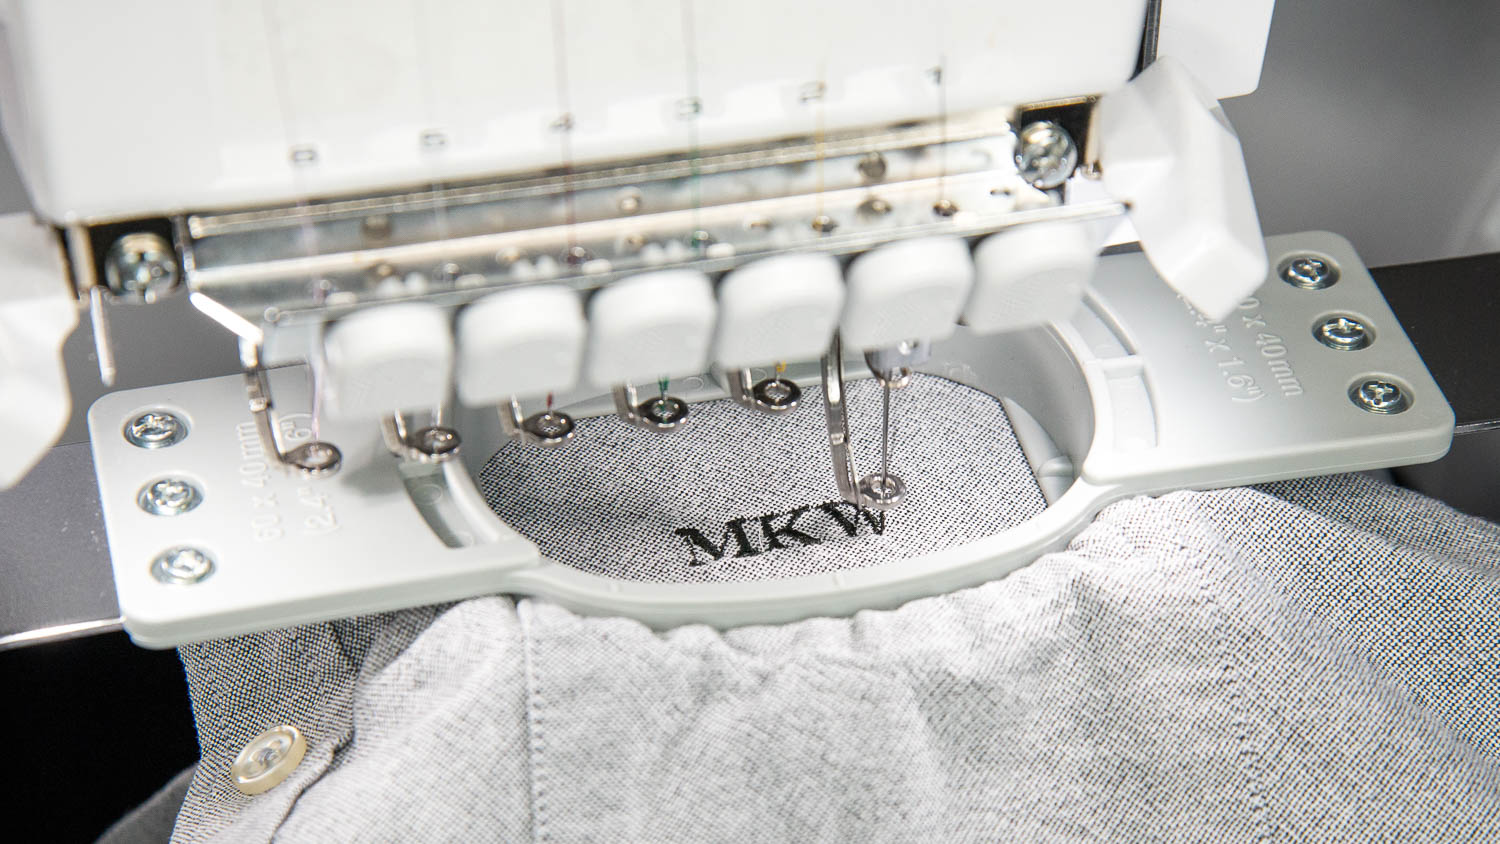 What:  Embroidery monogramming